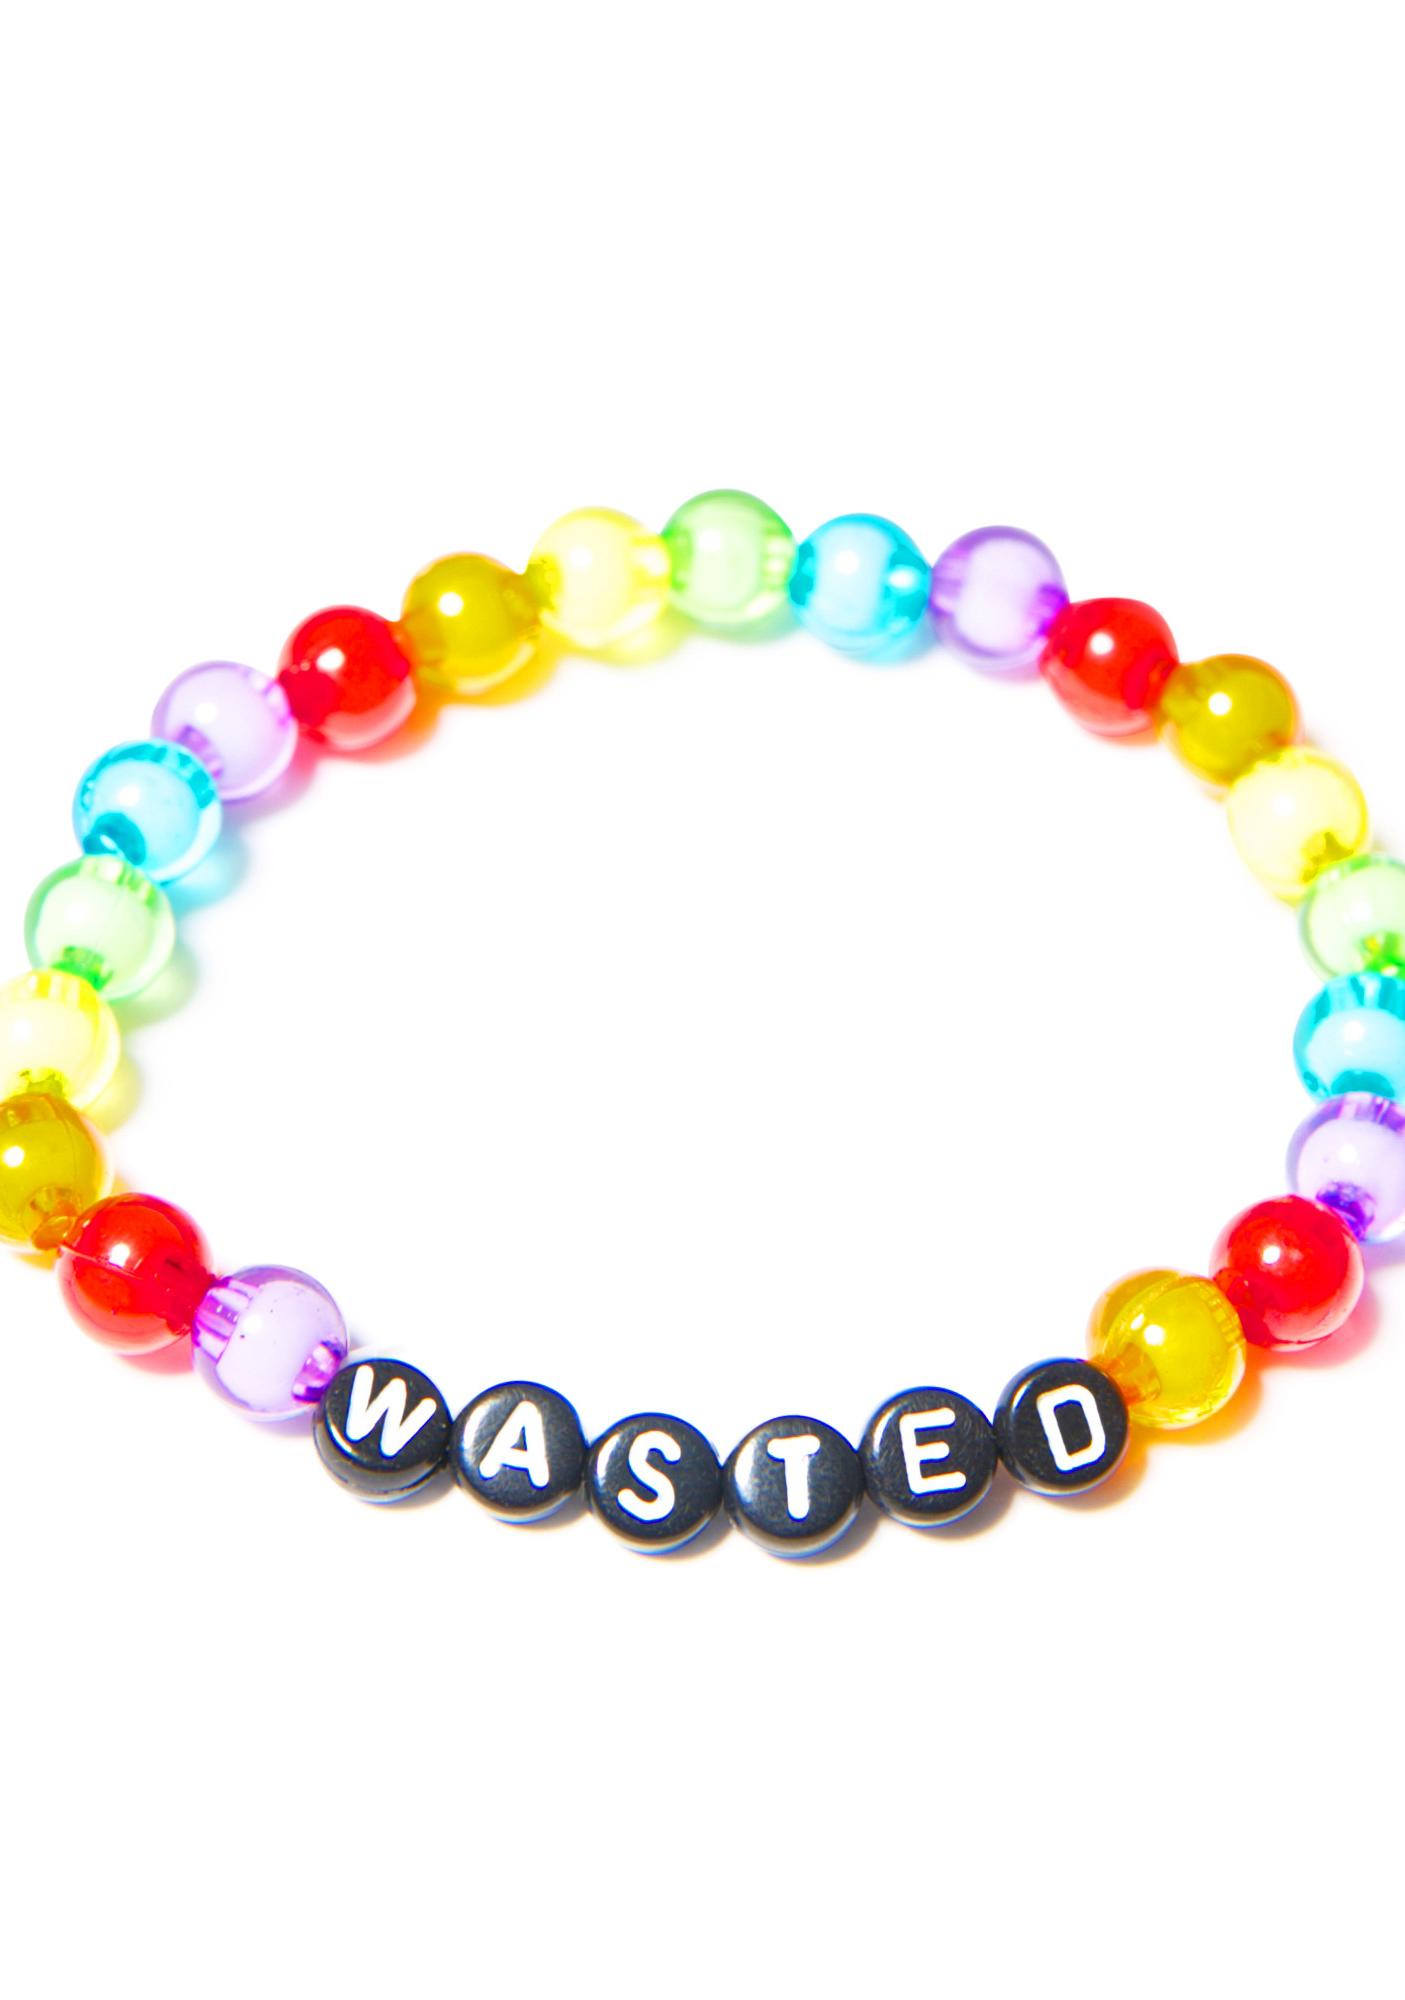 White Girl Wasted Bracelet